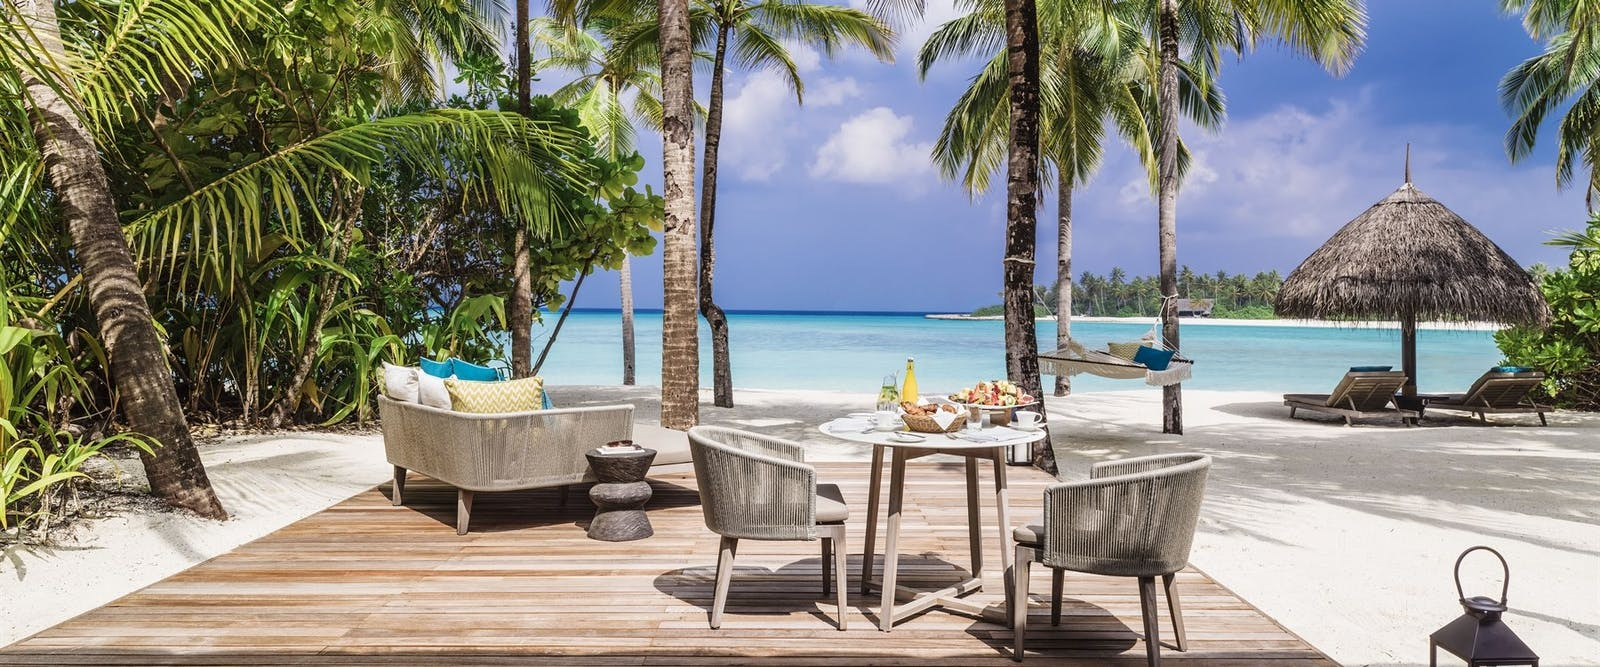 Beach Villa Outdoor Deck at One&Only Reethi Rah, Maldives, Indian Ocean